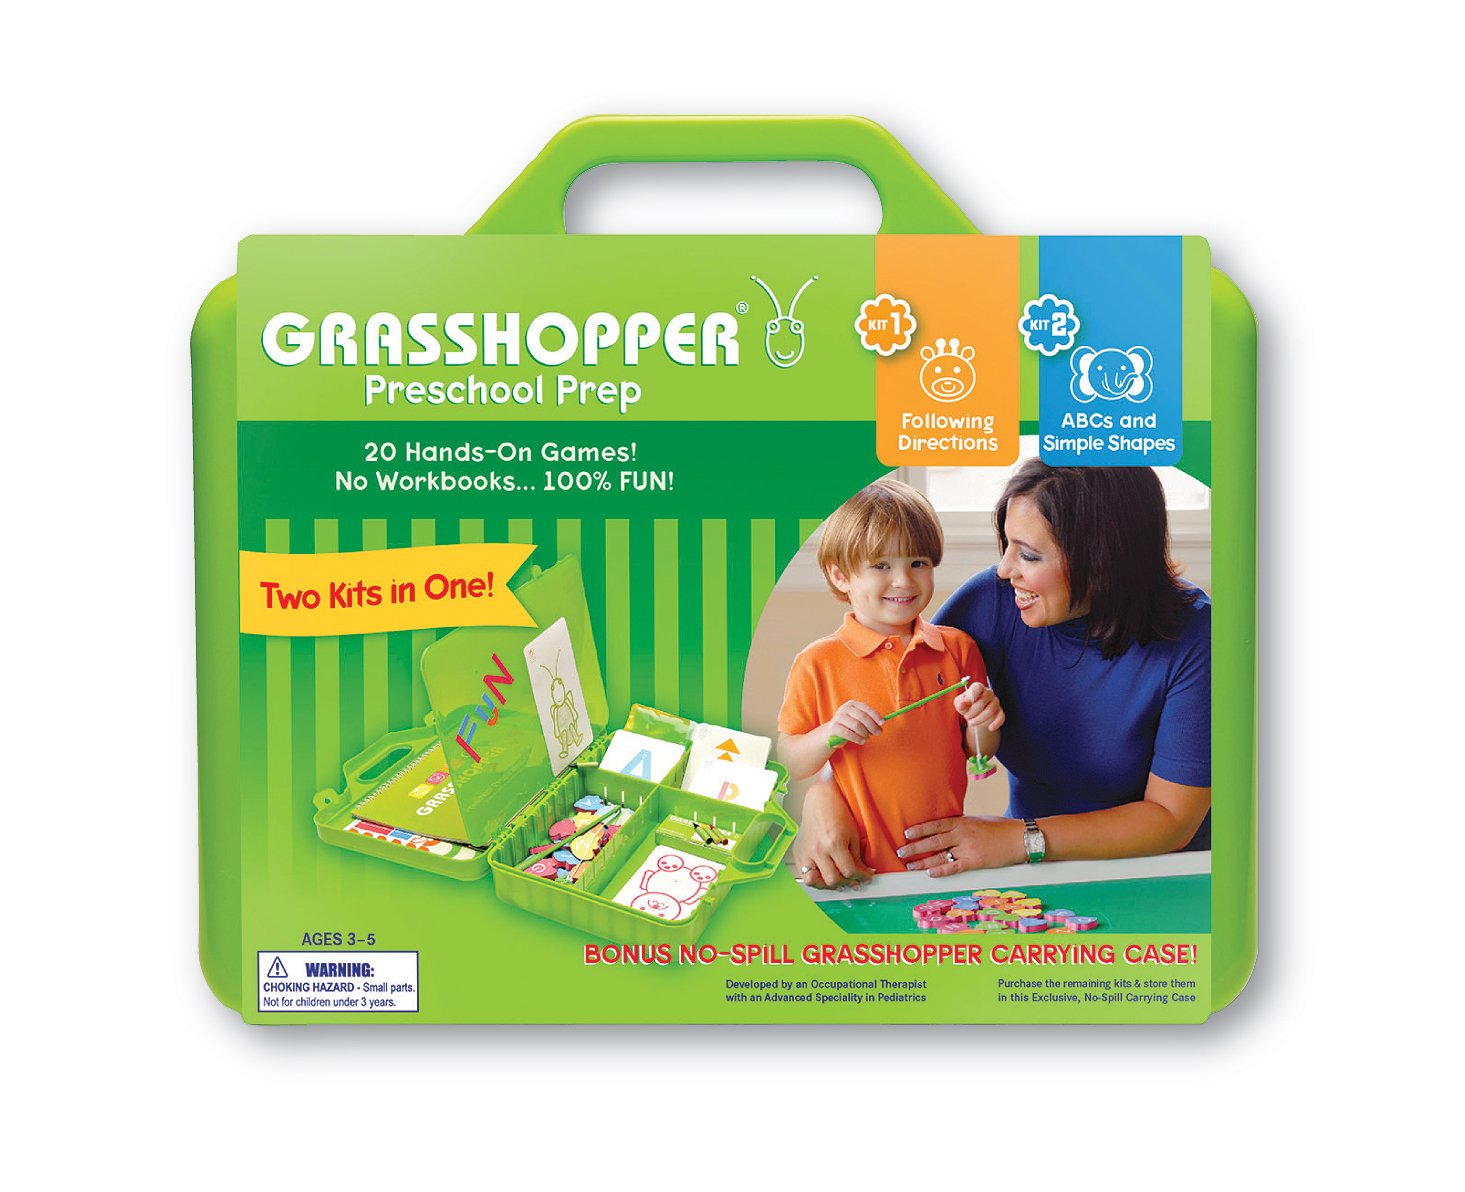 Amazon.com: Grasshopper Preschool Prep Kids ABCs & Following ...